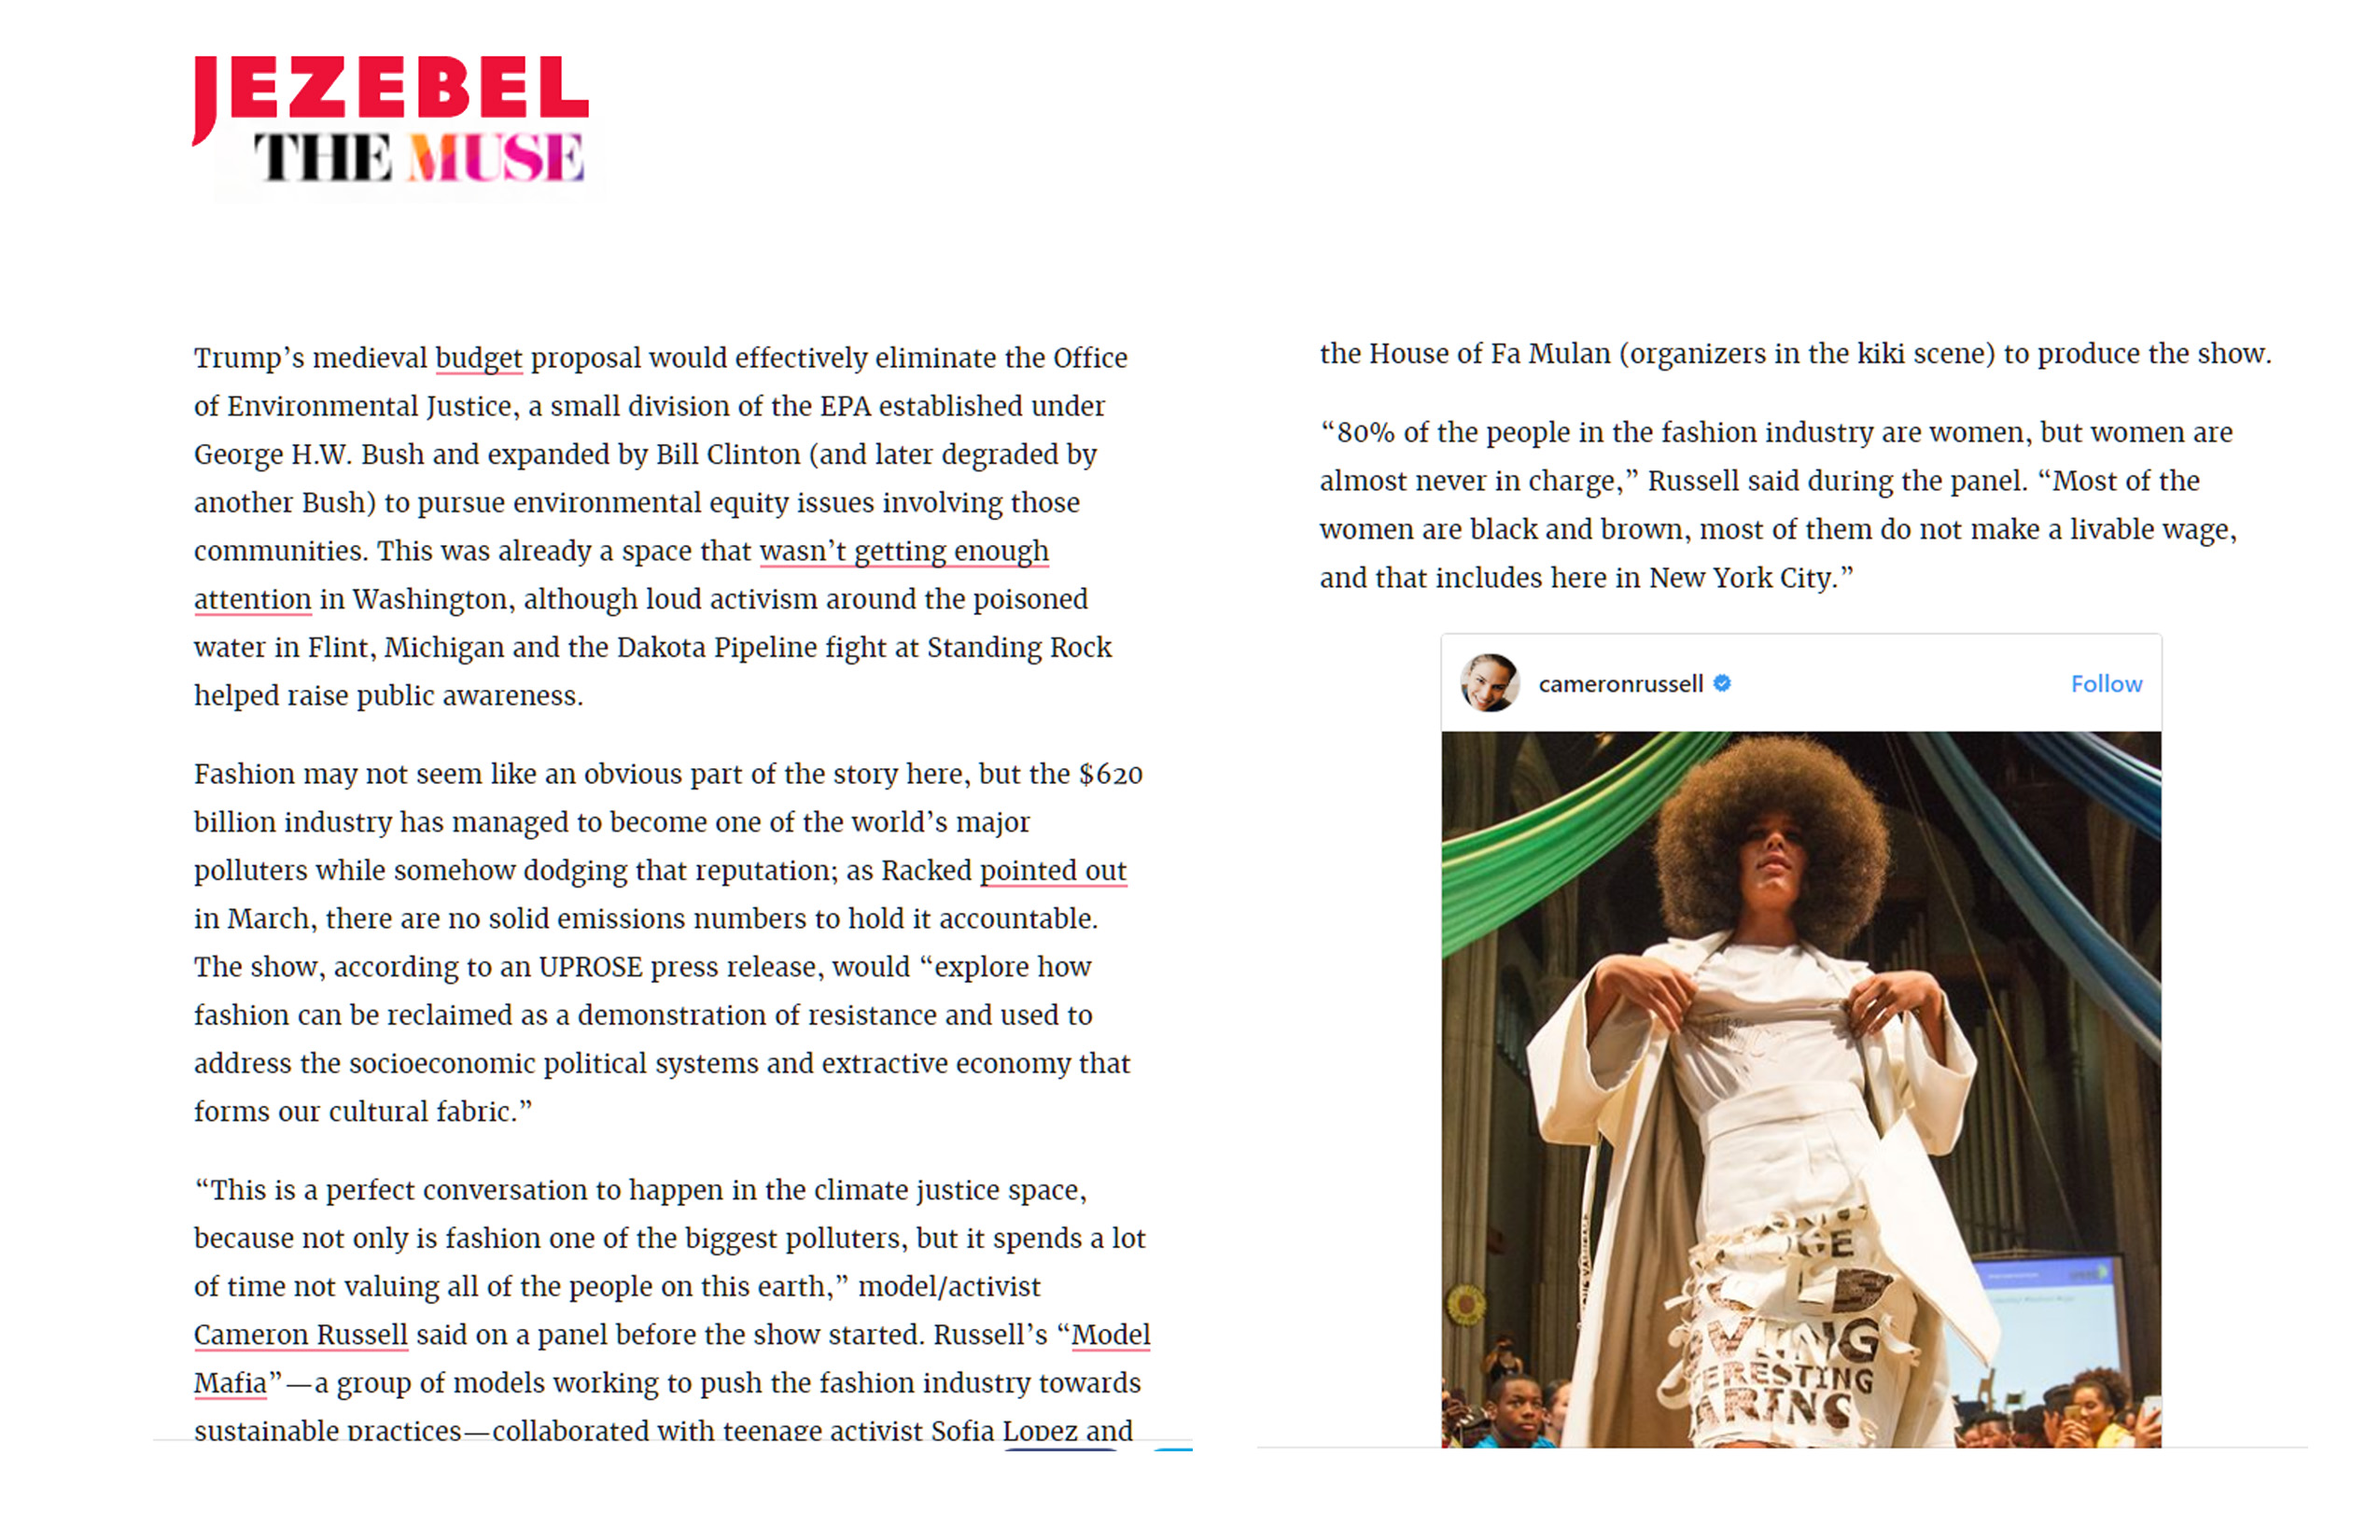 Jezebel The Muse Climate Justice Youth Summit Fashon Show article by E Shechet page 03